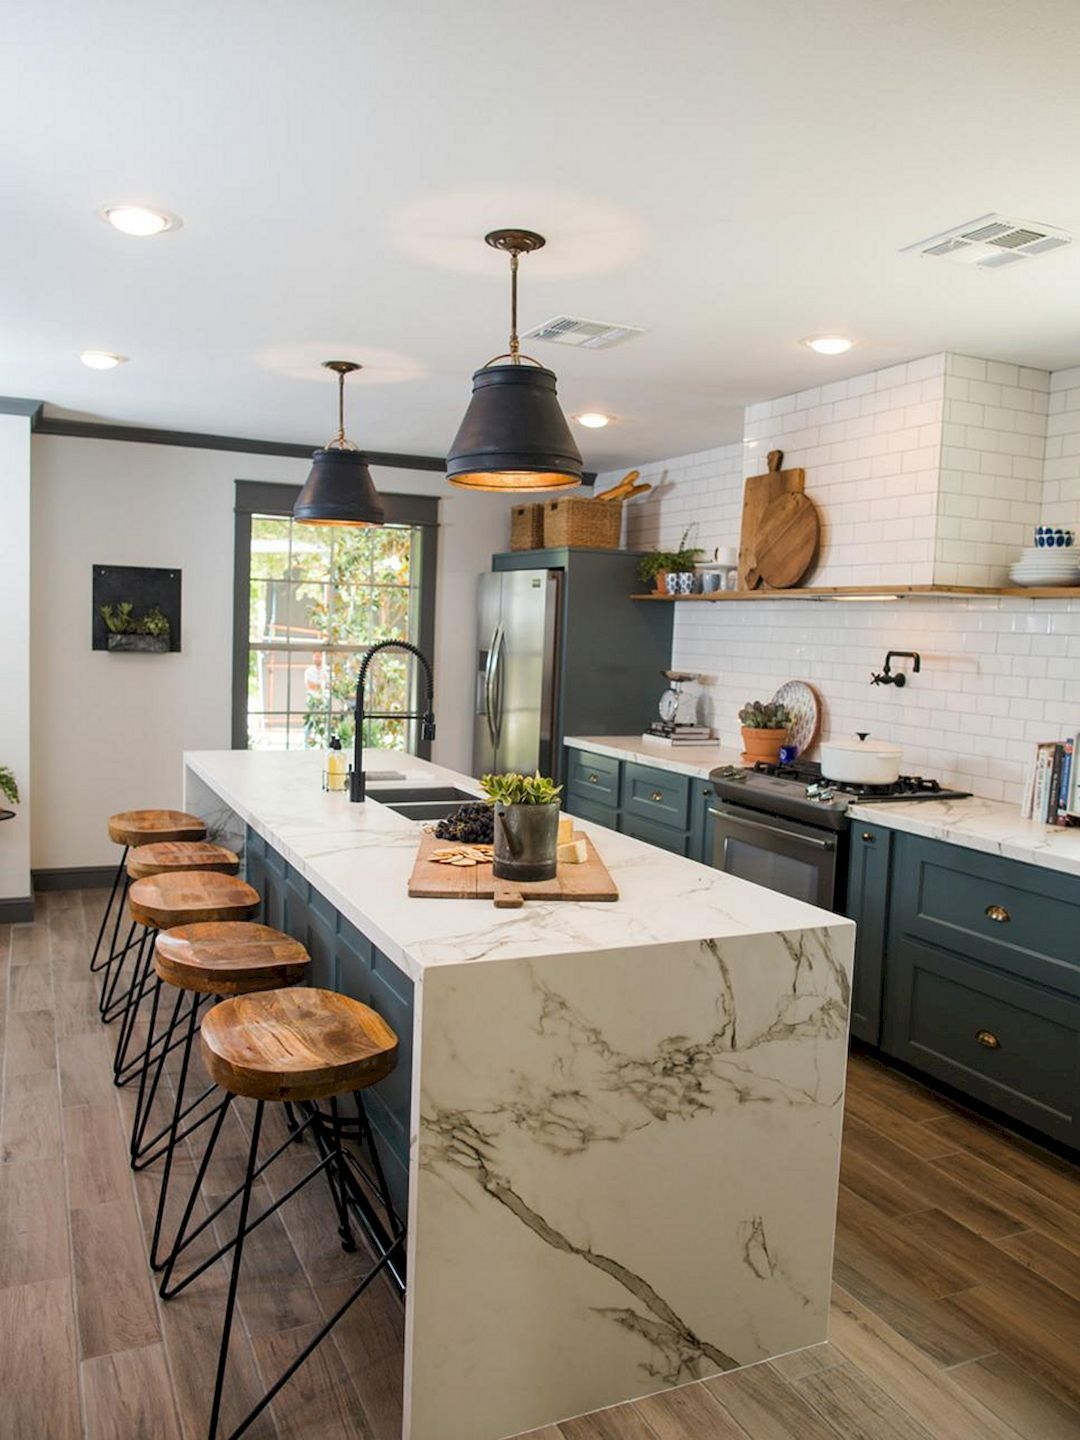 Top 42 Kitchen Design Inspirations From Joanna Gaines Houses